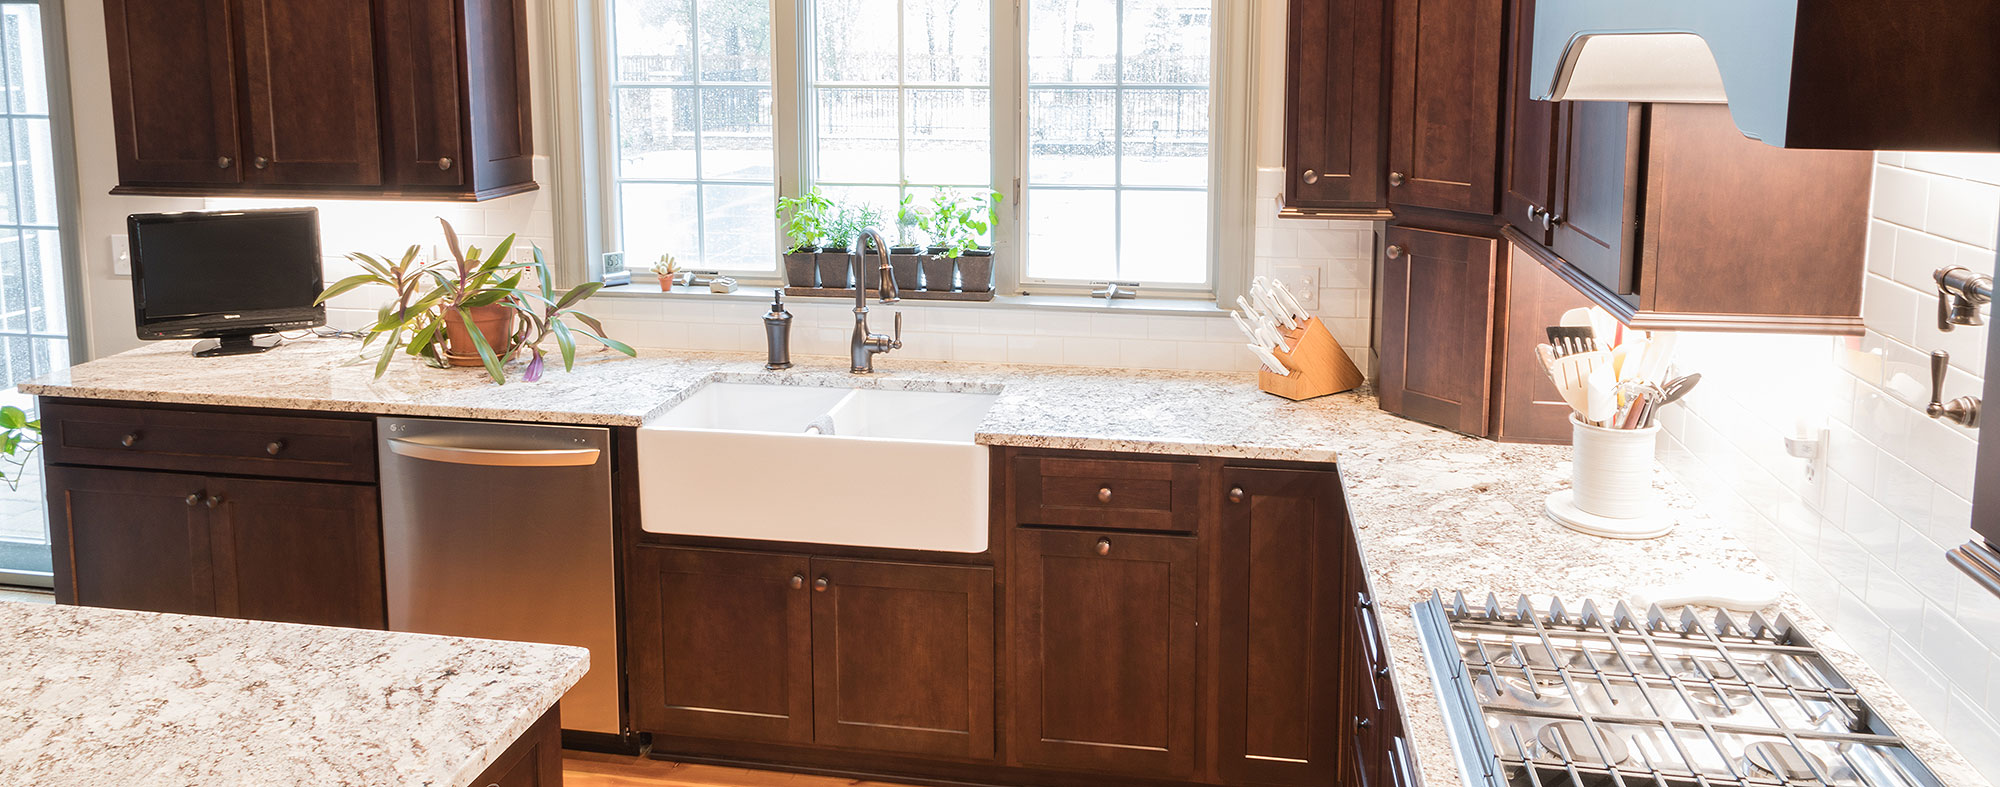 Apron Sinks and Natural Stone Countertop